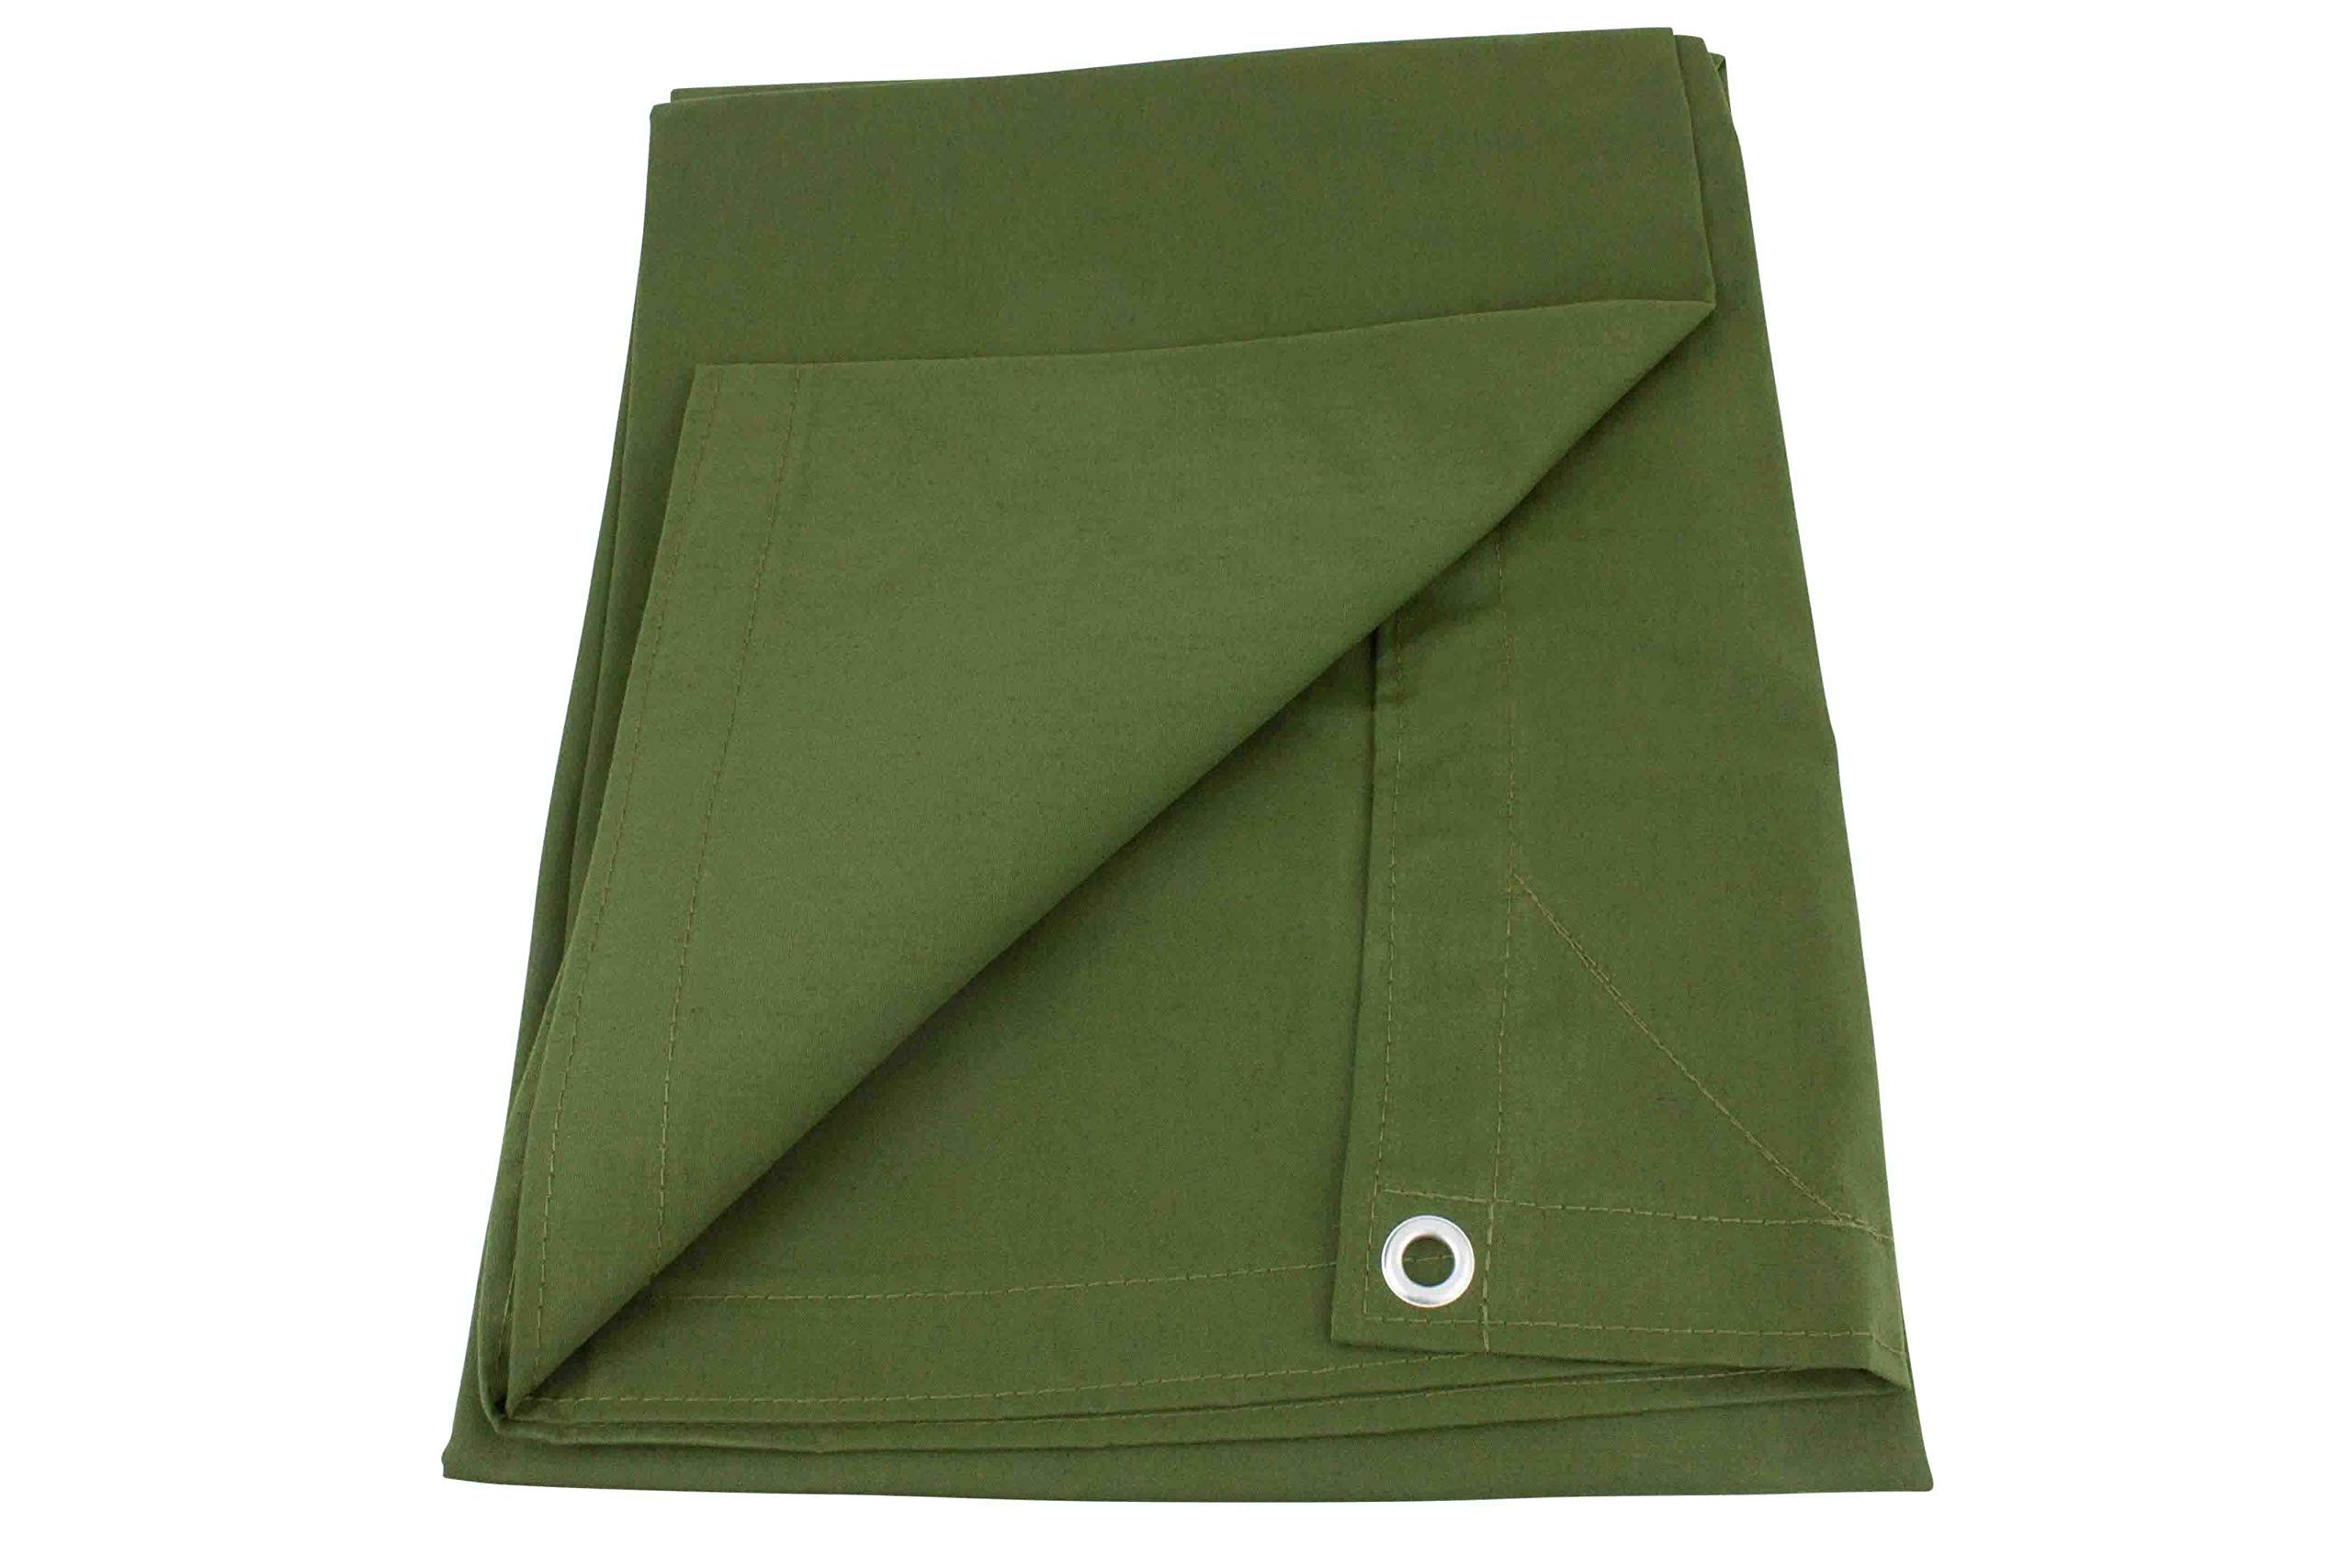 12' x 24' Green Canvas Tarp 12oz Heavy Duty Water Resistant